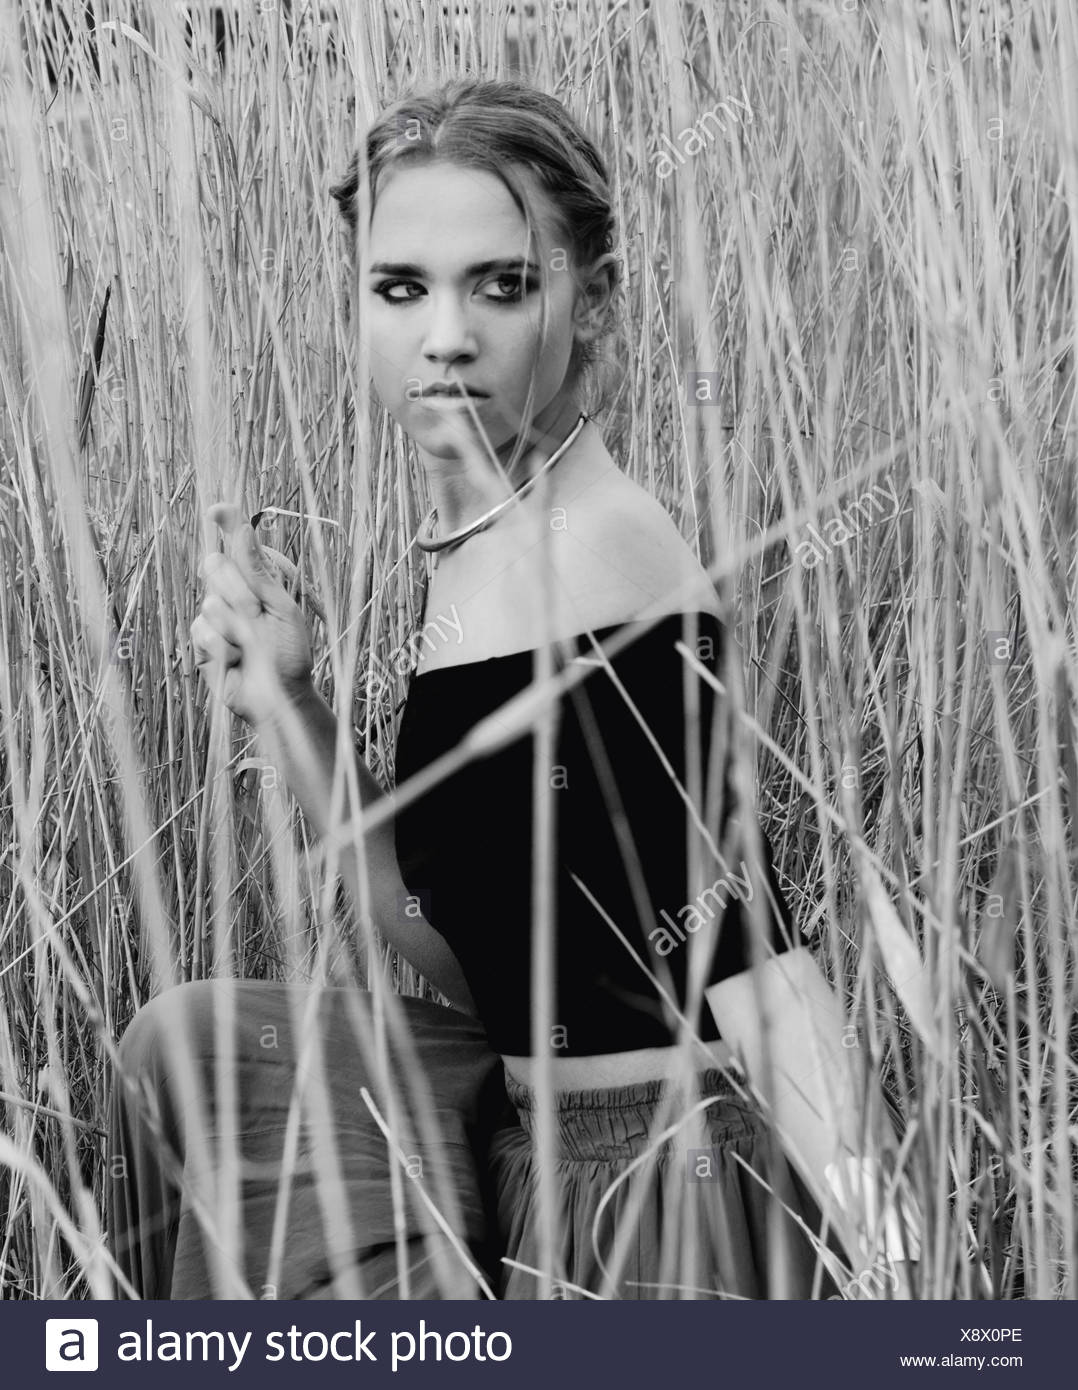 Woman hiding in tall grass - Stock Image